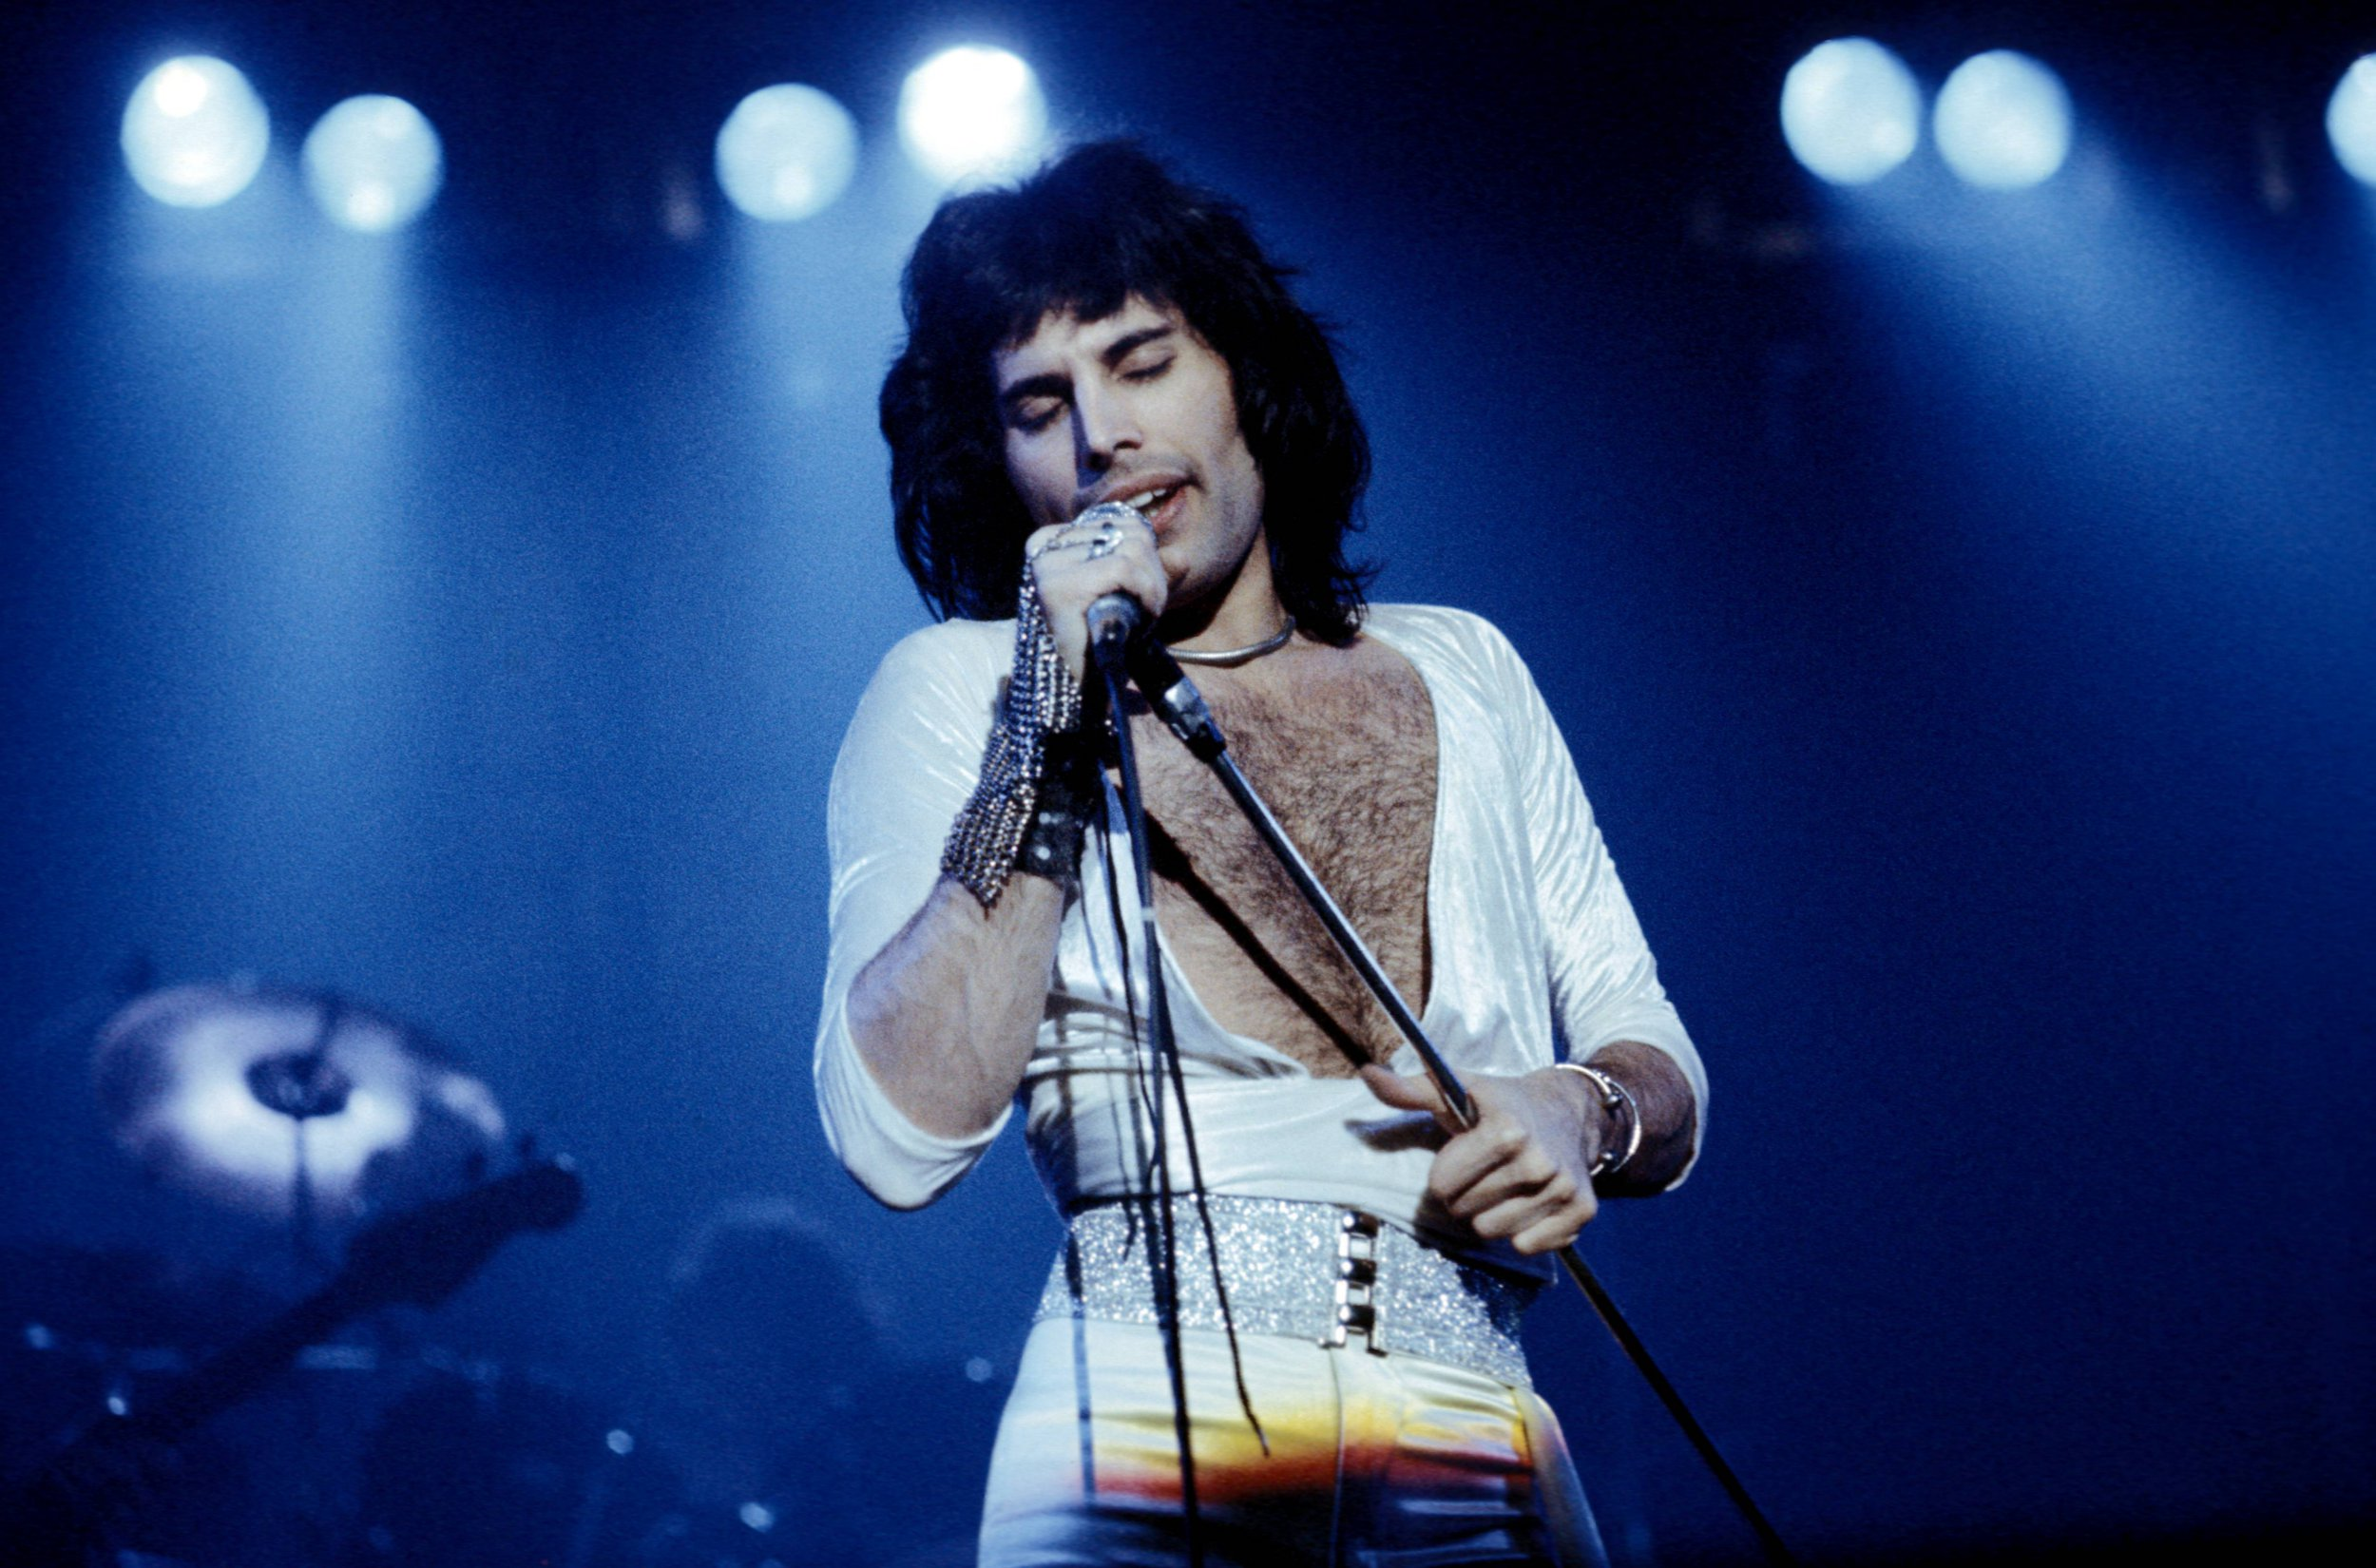 UNSPECIFIED - FEBRUARY 01: Photo of Freddie MERCURY and QUEEN; Freddie Mercury performing live on stage, (Photo by Fin Costello/Redferns)